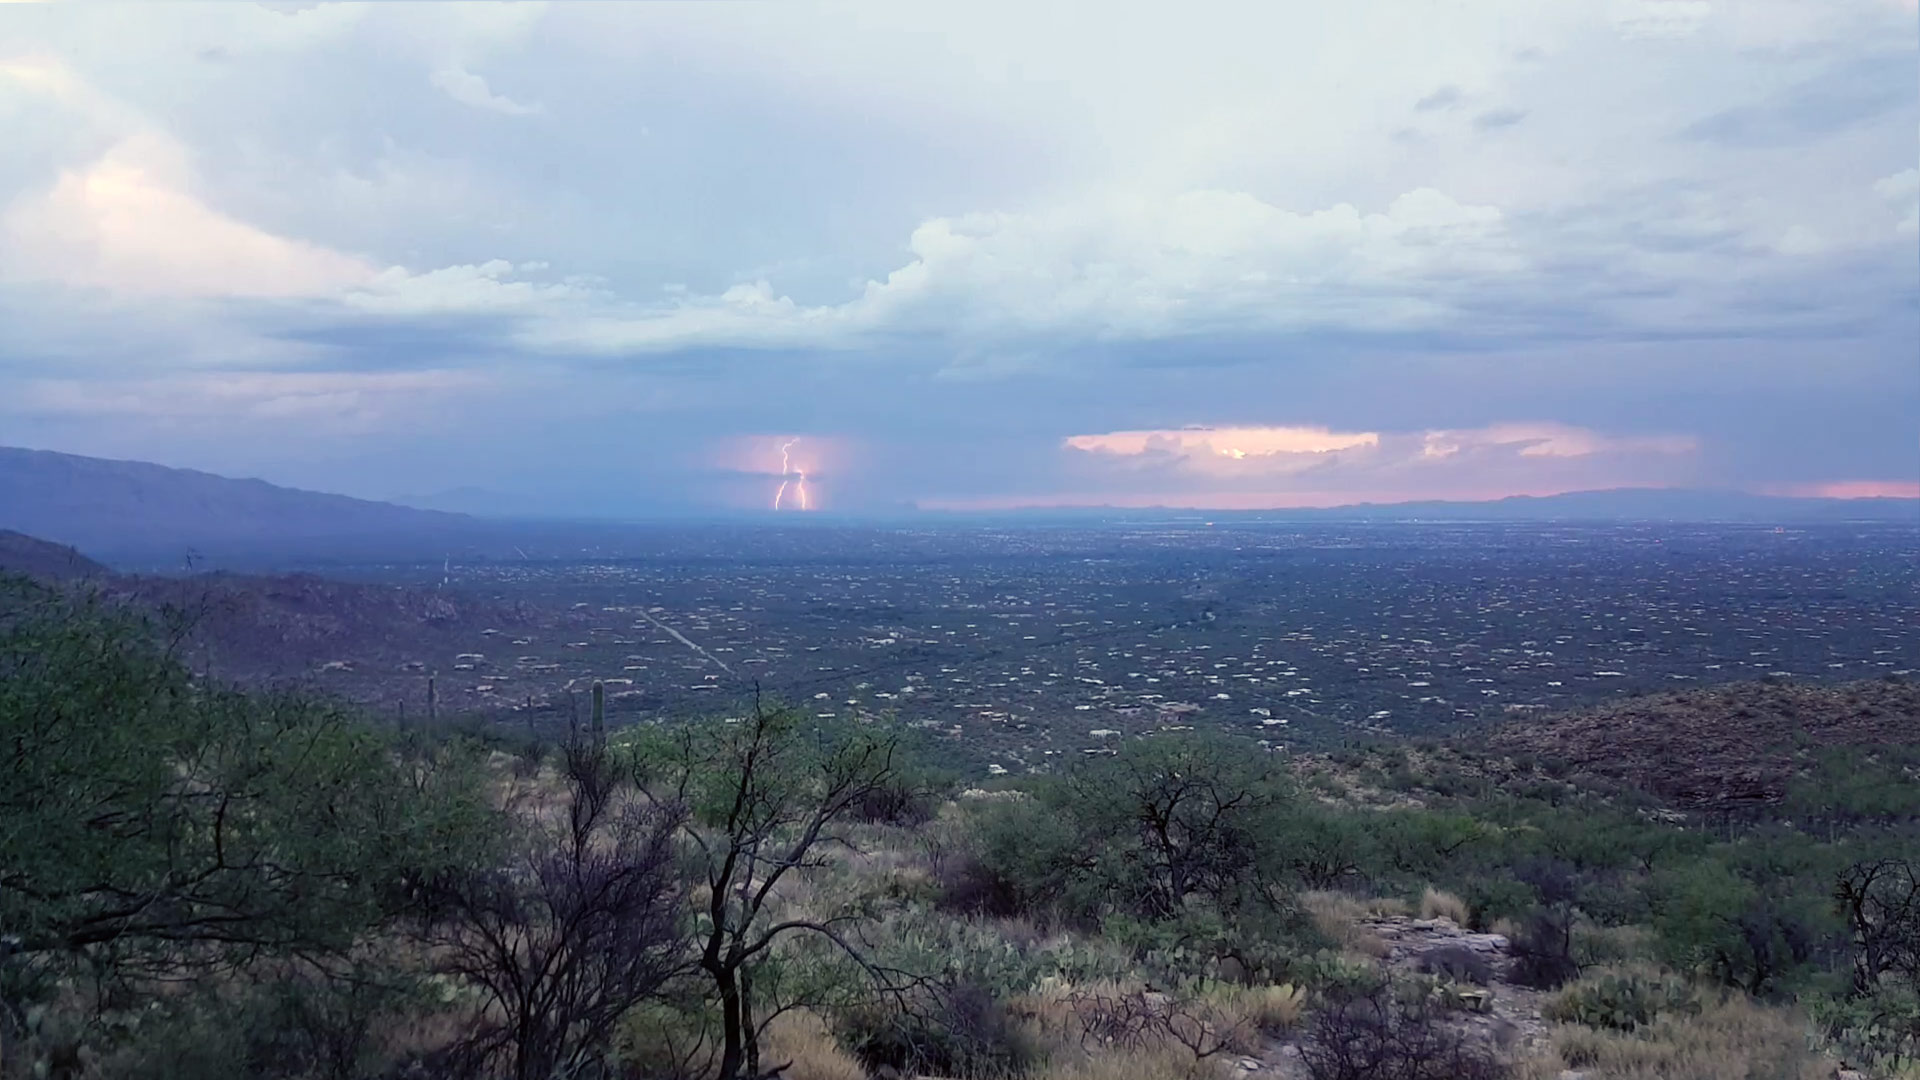 A lightning strike over east Tucson.